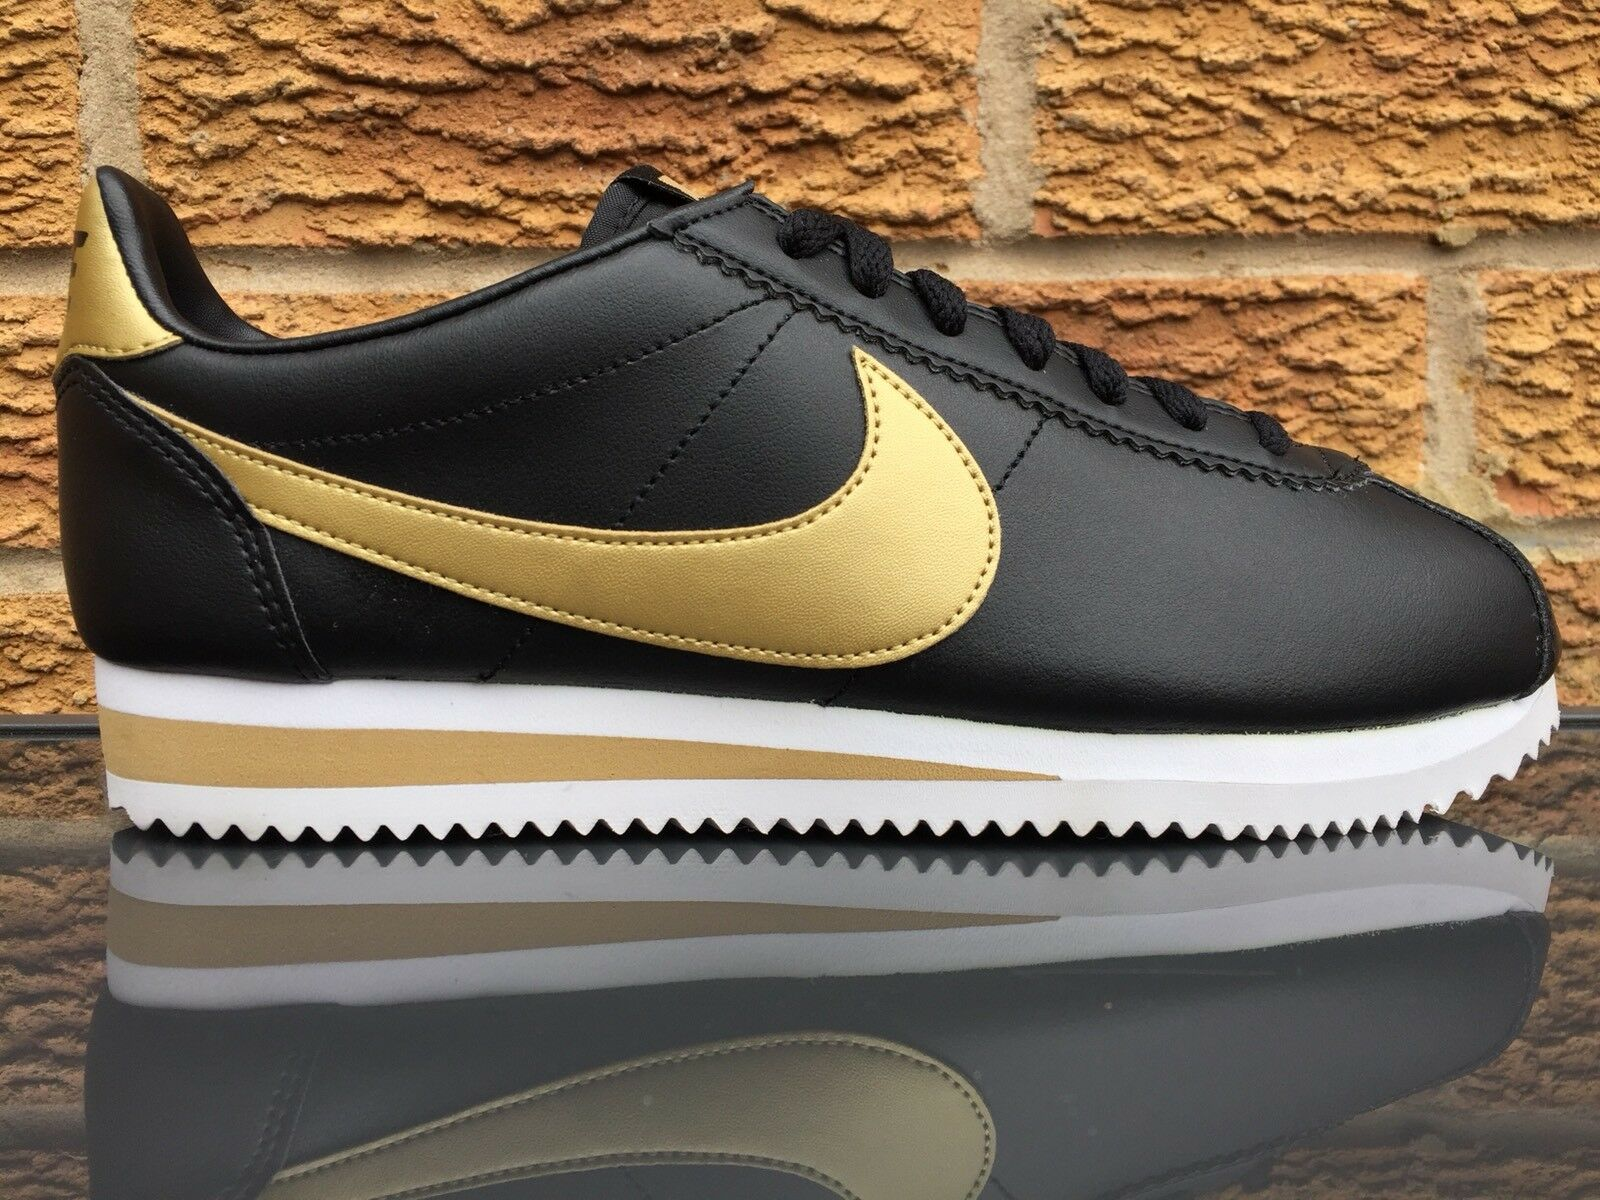 Nike Classic Cortez Leather  noir Gold 4.5 7  EUR 38  US 7 4.5  807471-008 d33119